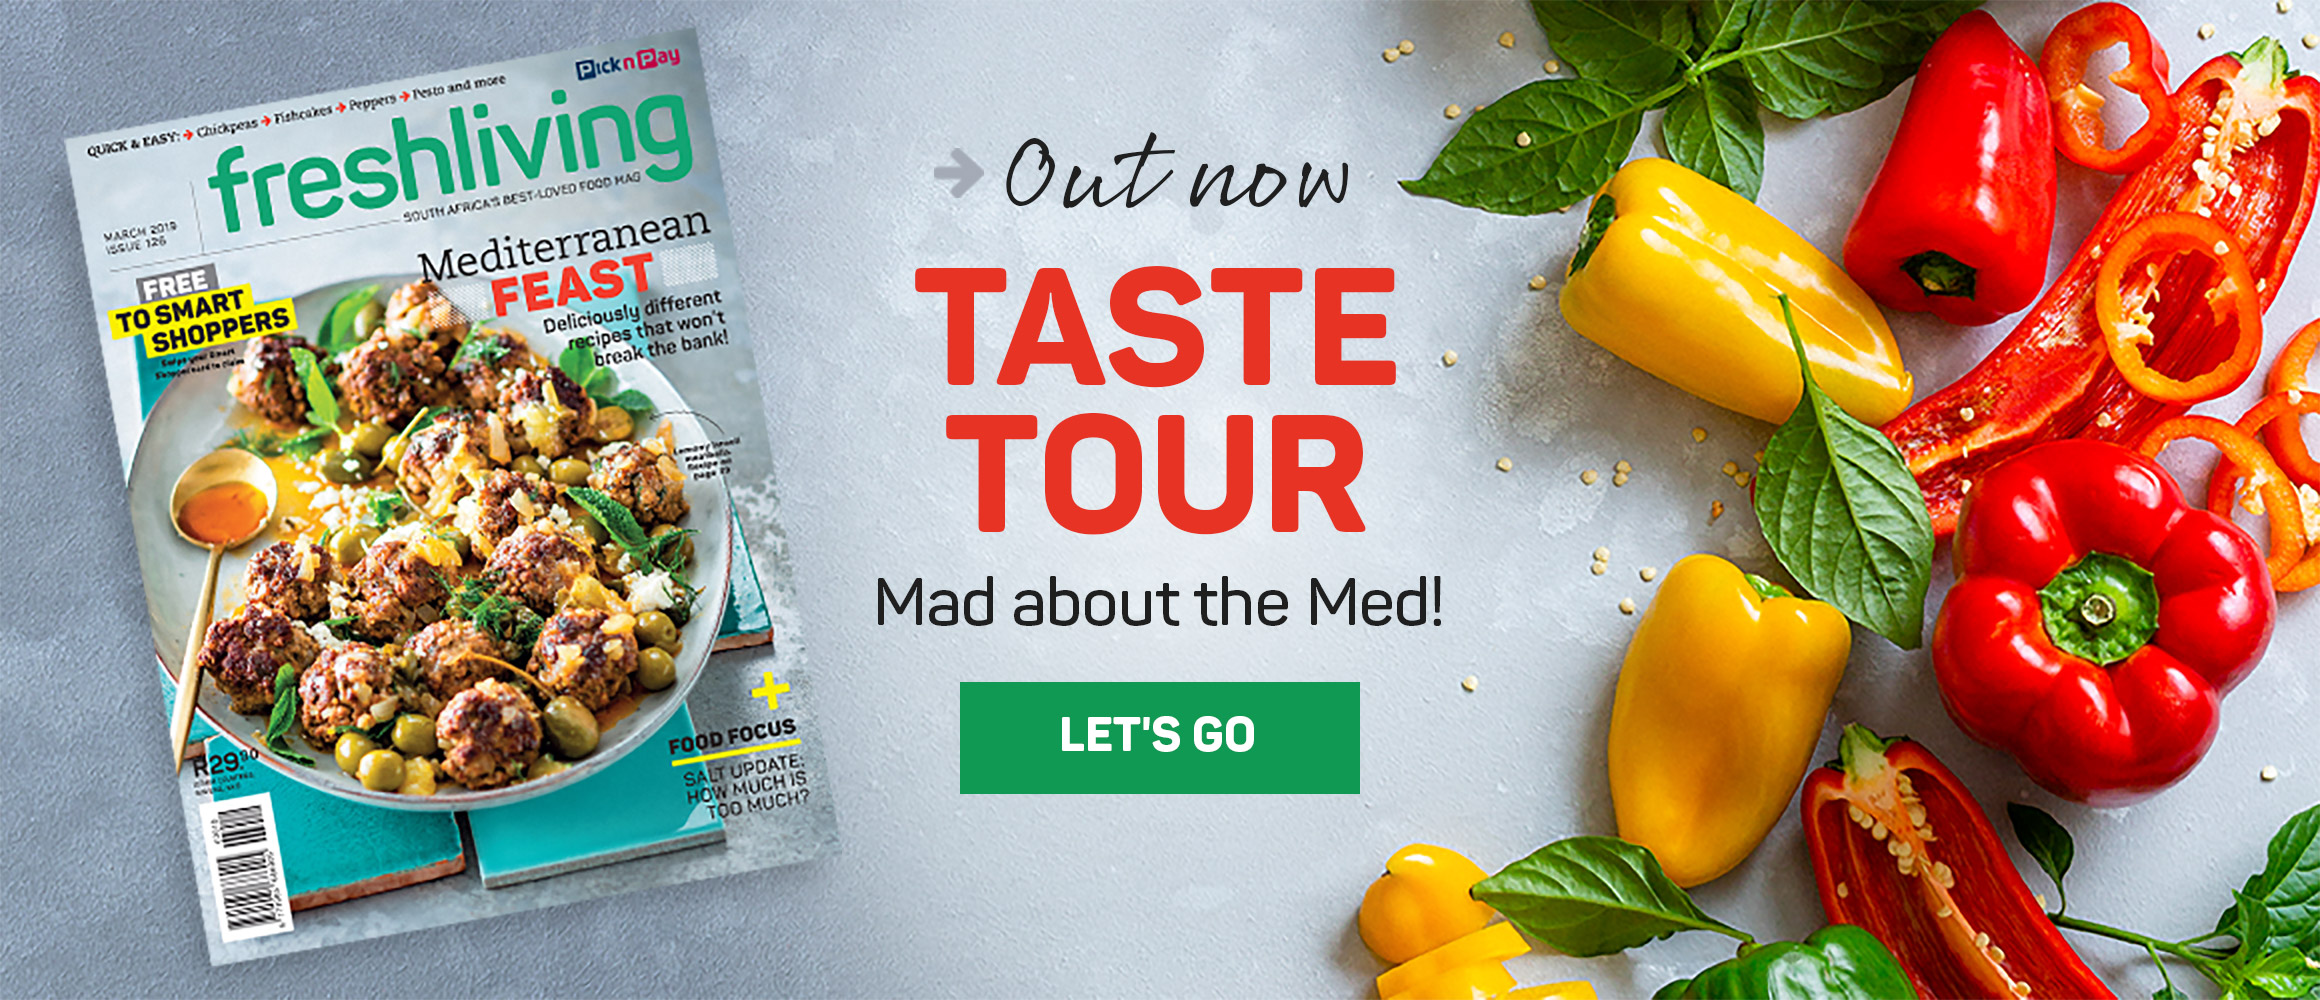 Out now taste tour. Mad about the Med! Let's go